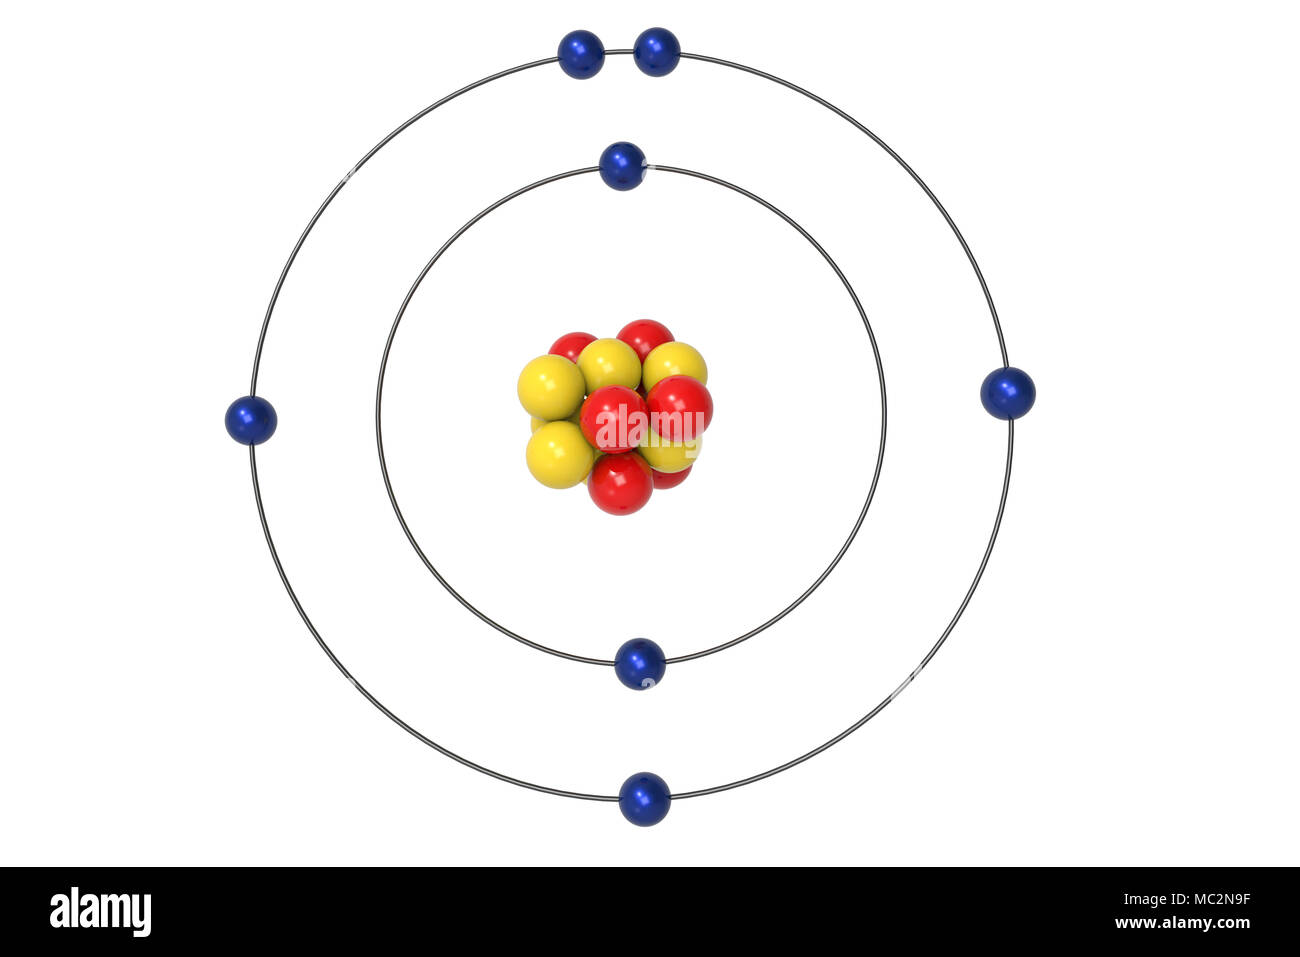 Nitrogen atom bohr model with proton neutron and electron 3d nitrogen atom bohr model with proton neutron and electron 3d illustration ccuart